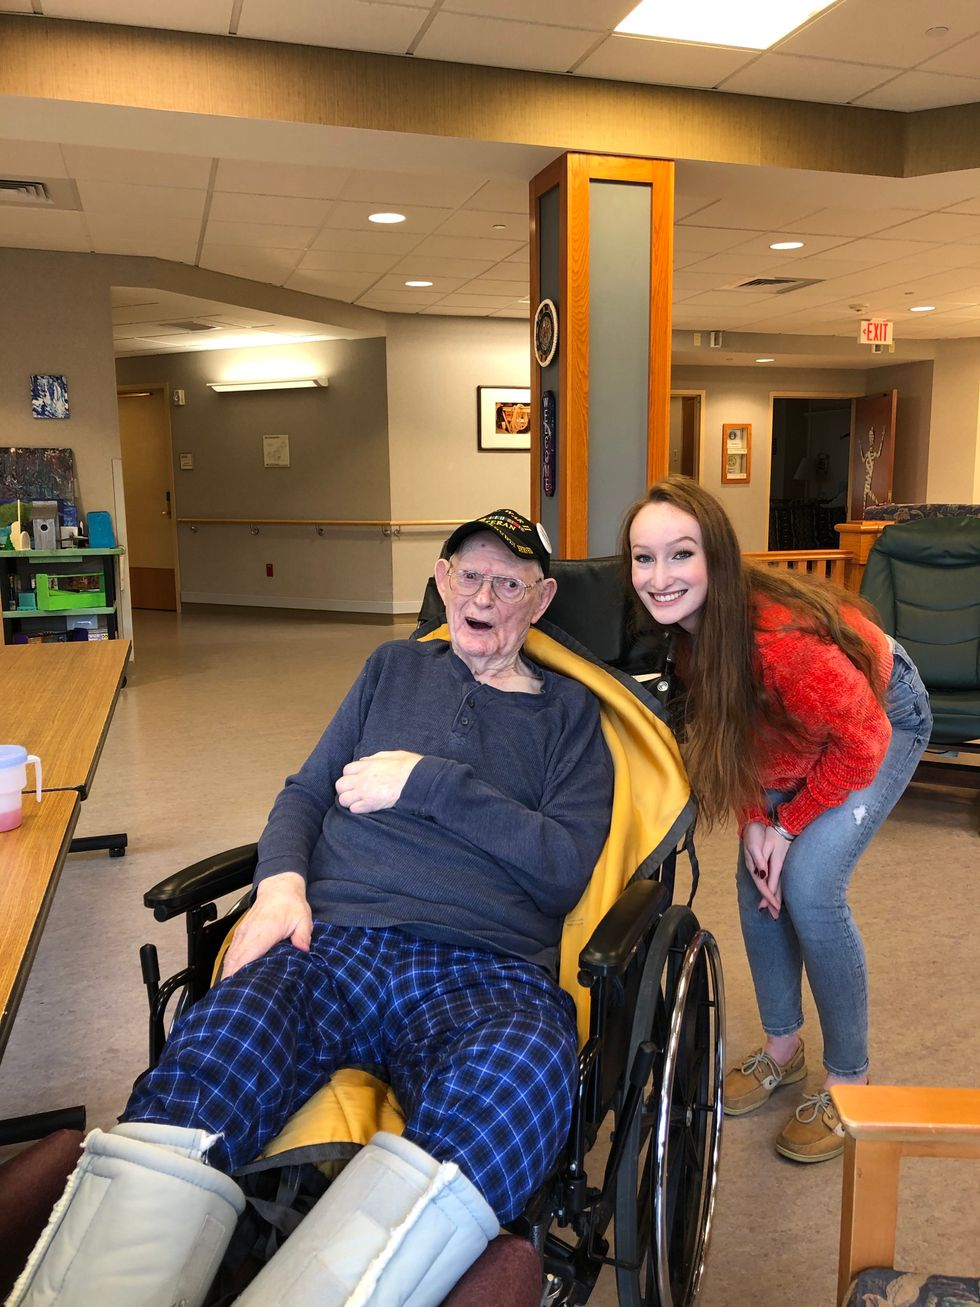 The Struggles Of Having A Grandparent In A Nursing Home During COVID-19